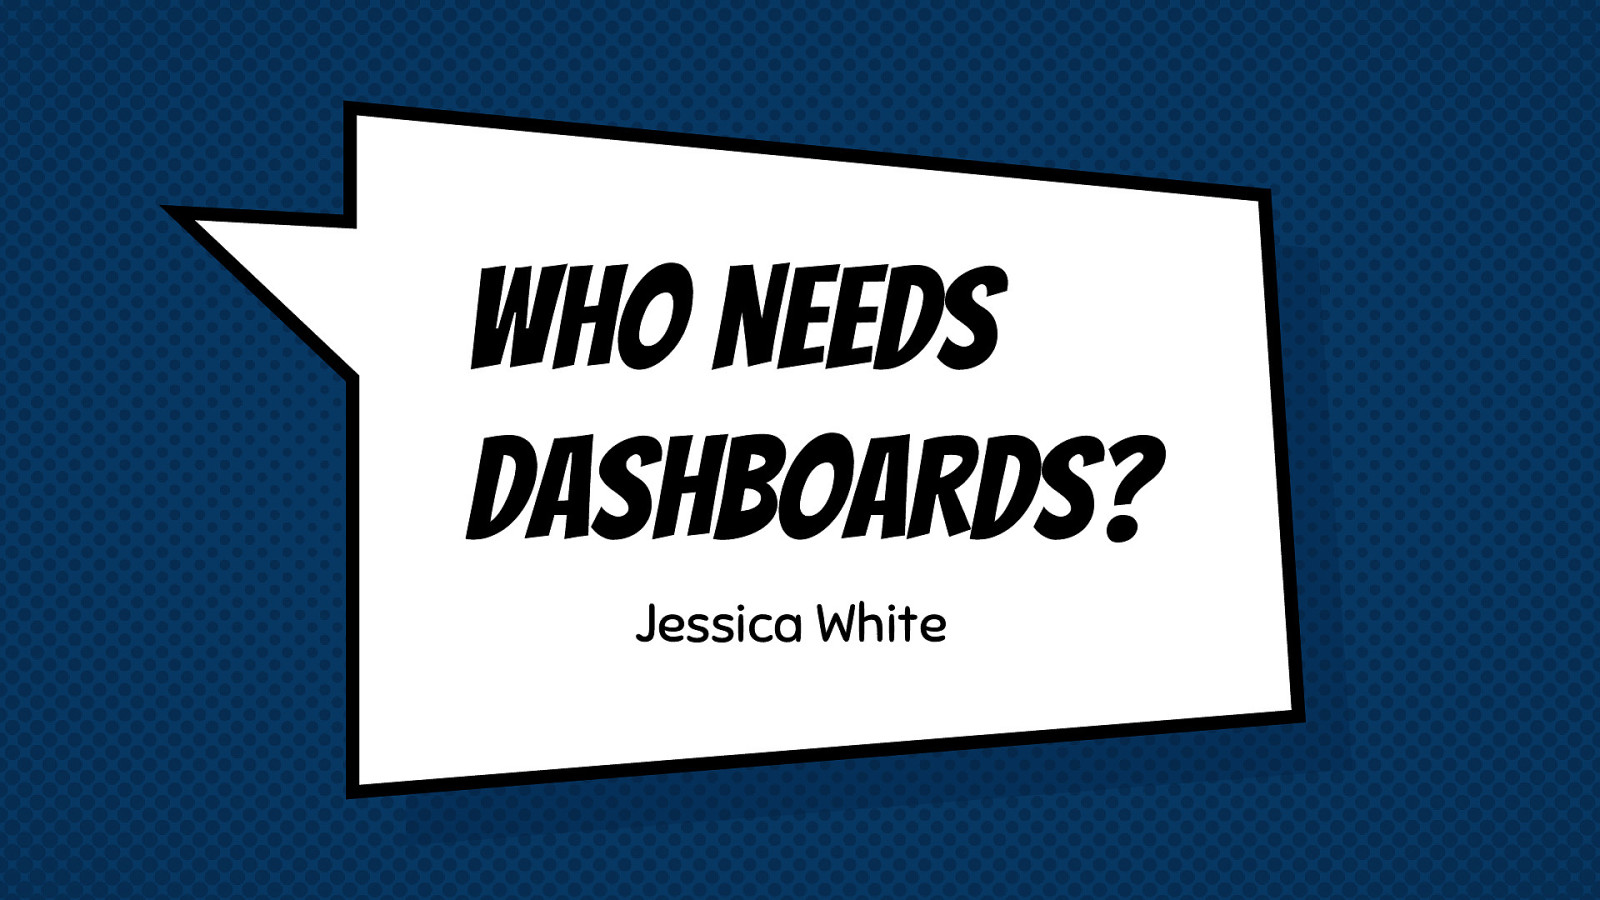 Who Needs Dashboards?